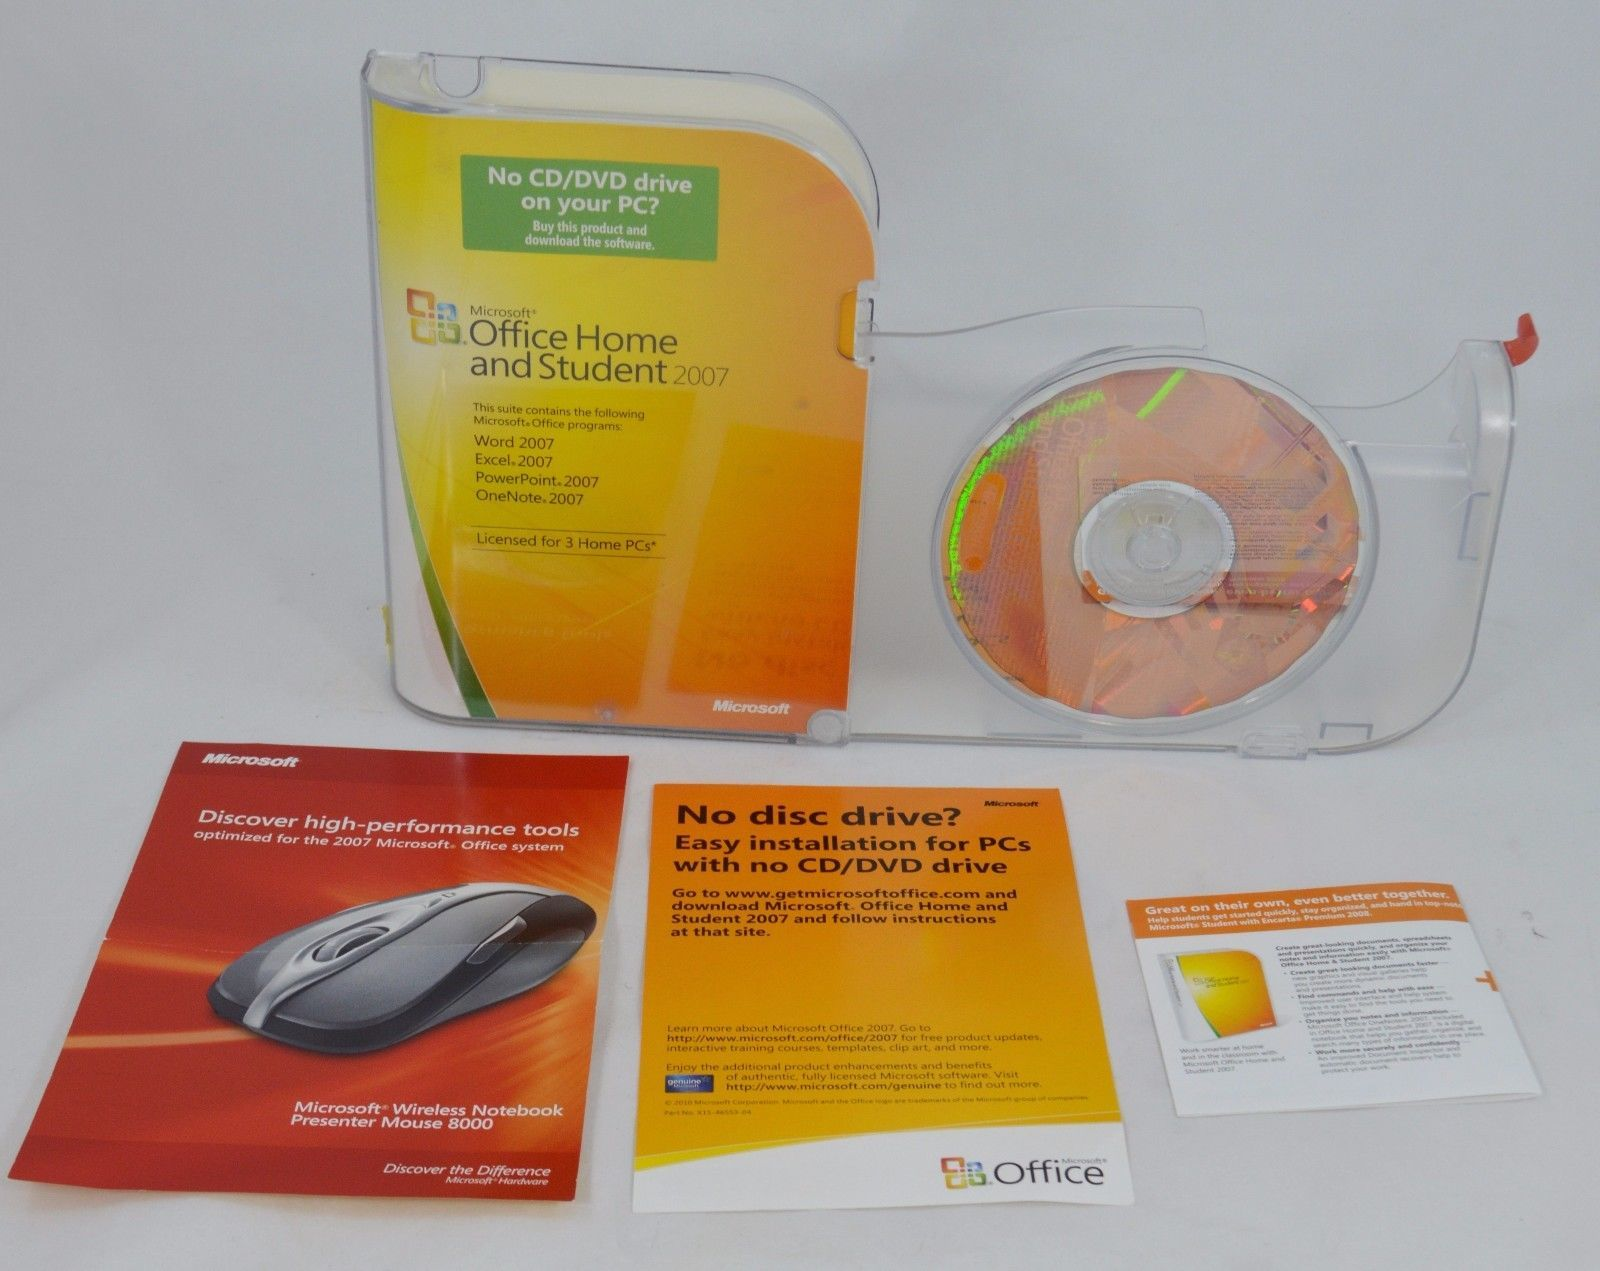 Microsoft Office Home and Student 2007 and 37 similar items